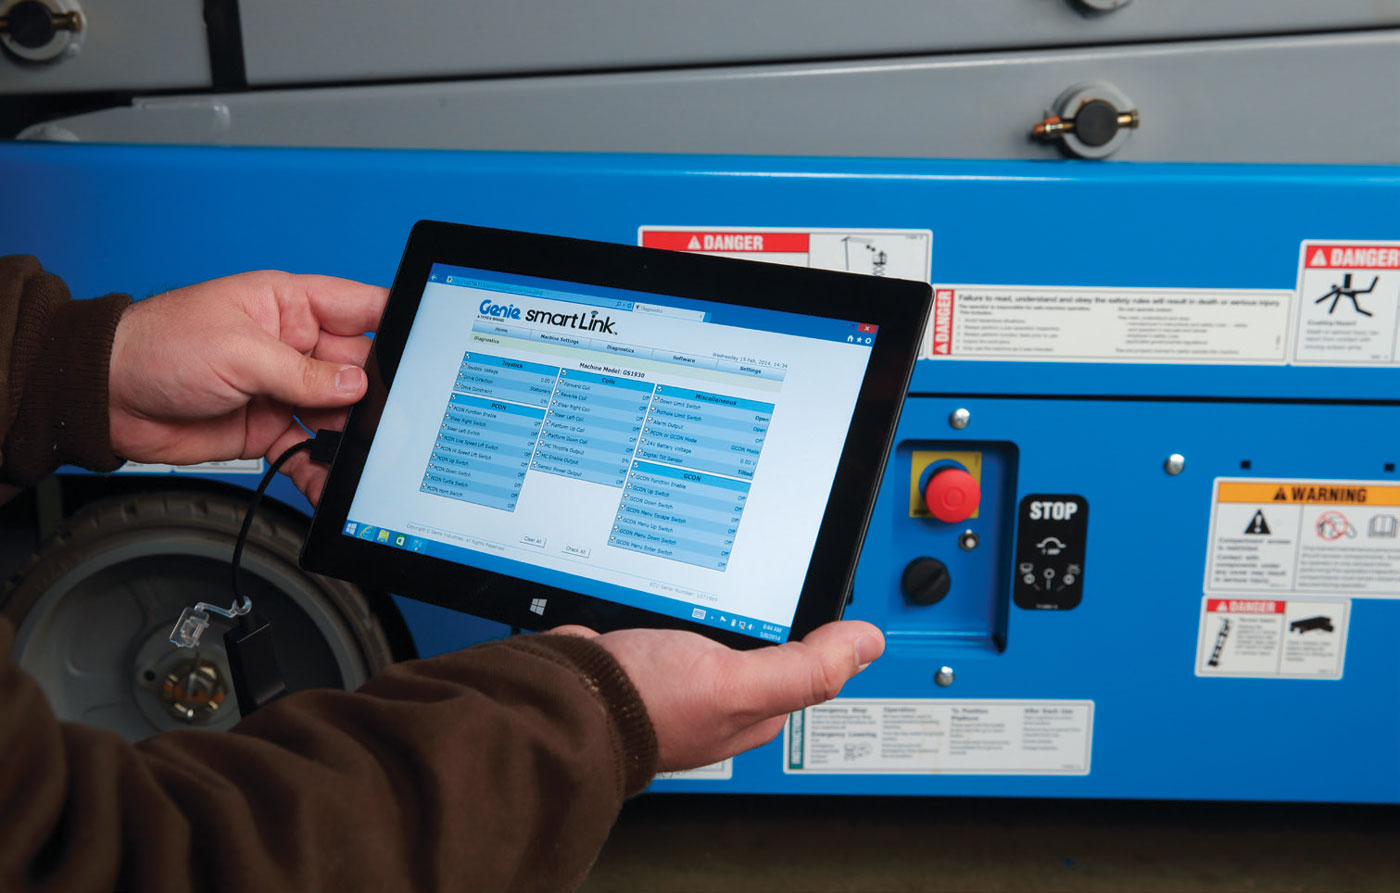 GENIE HAS RELEASED AN UPDATE TO ITS EXISTING SMARTLINK™ CONTROL SYSTEM